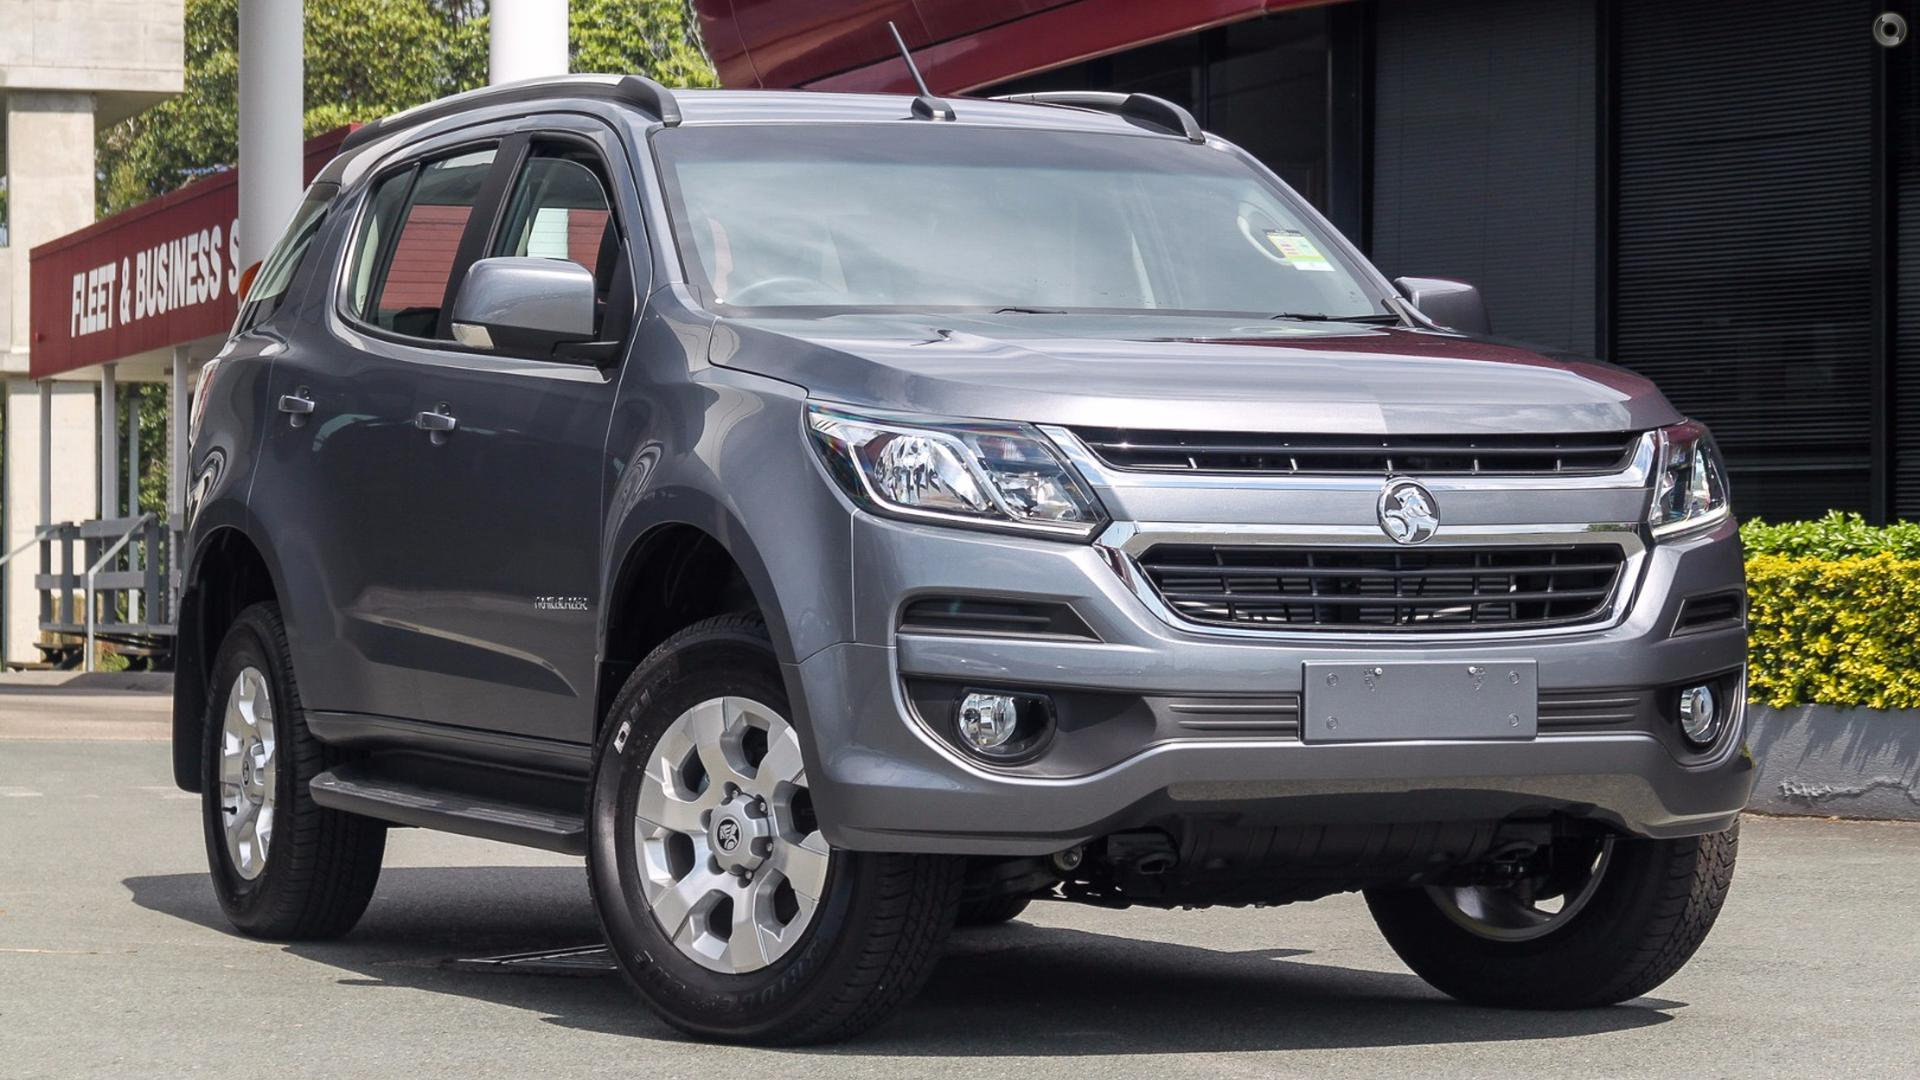 2018 Holden Trailblazer Lt